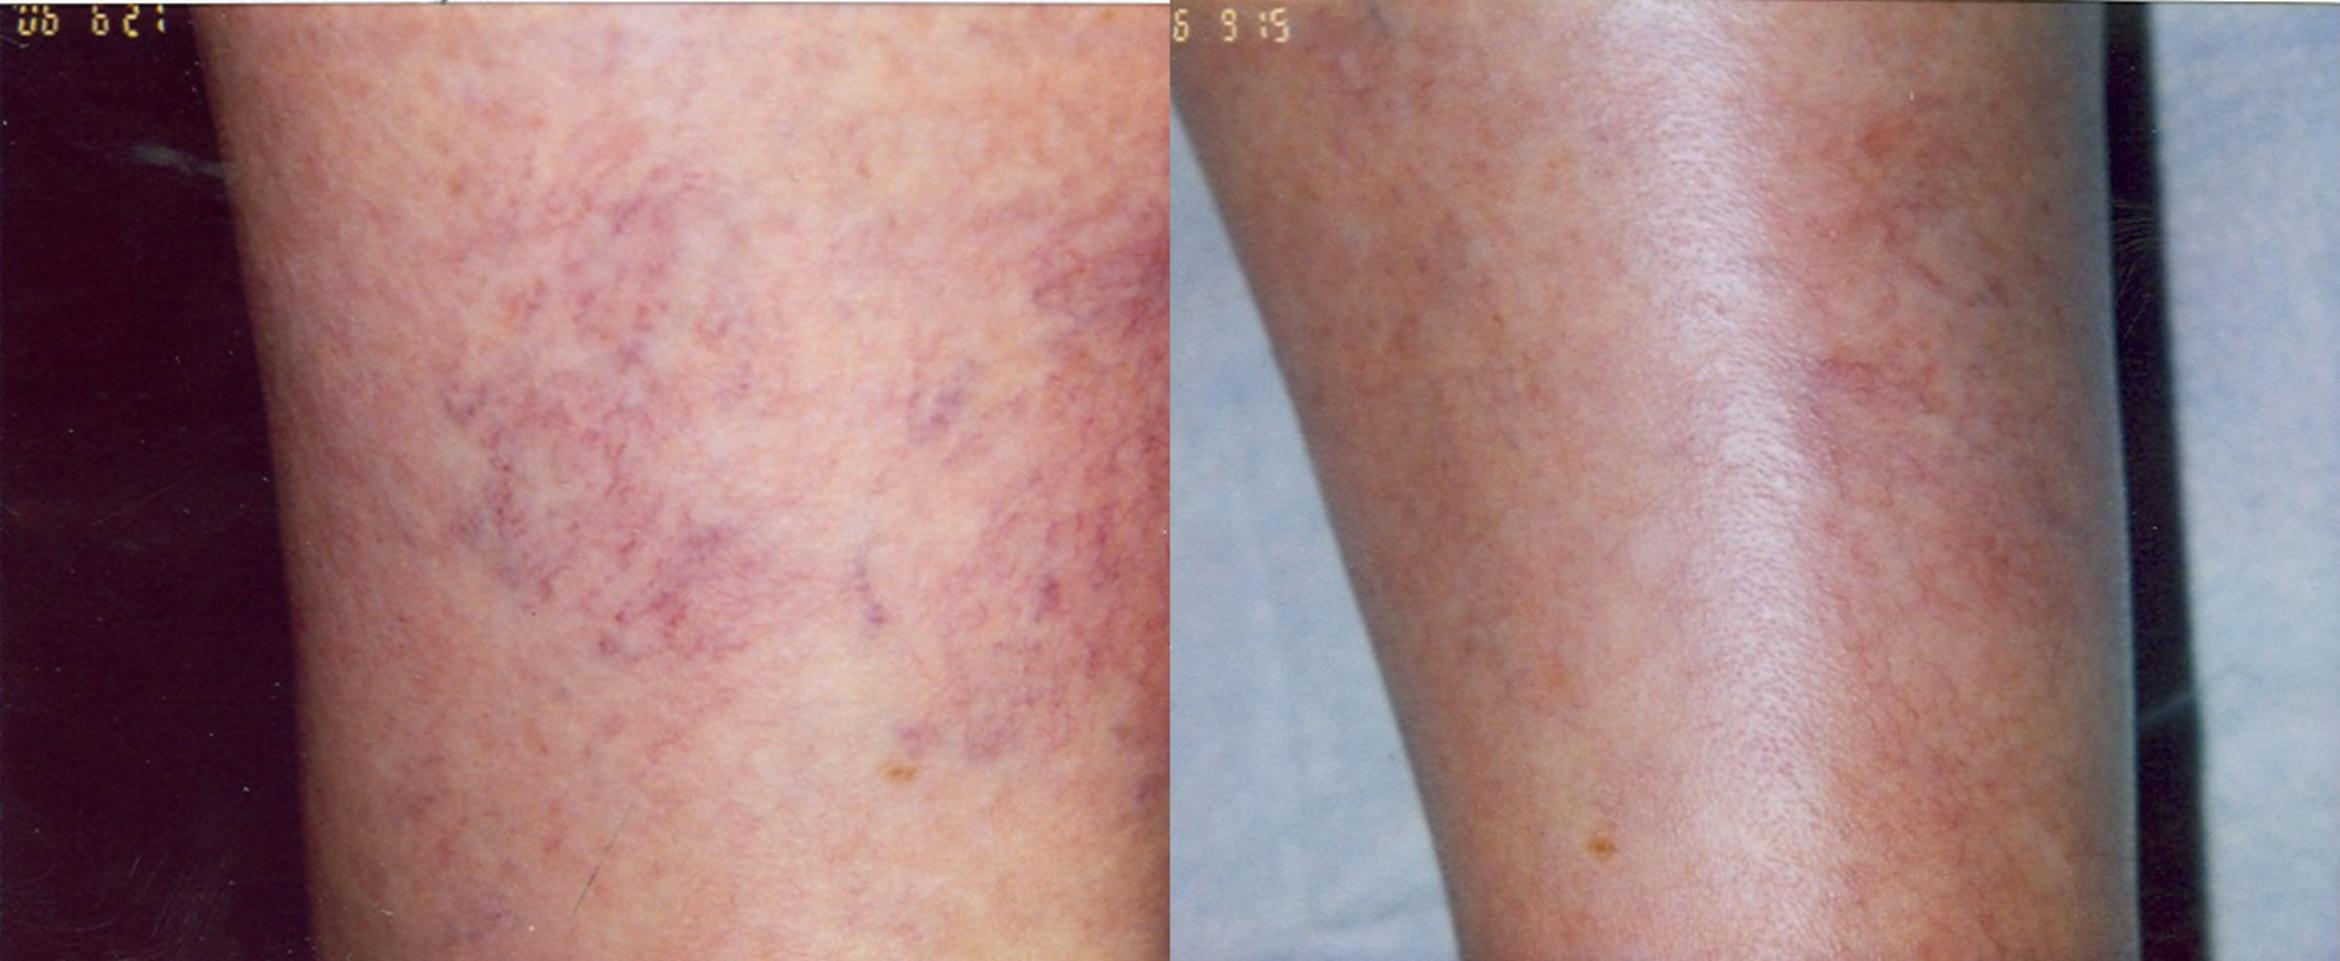 Sclerotherapy Before & After Photo | San Francisco, CA | Kaiser Permanente Cosmetic Services